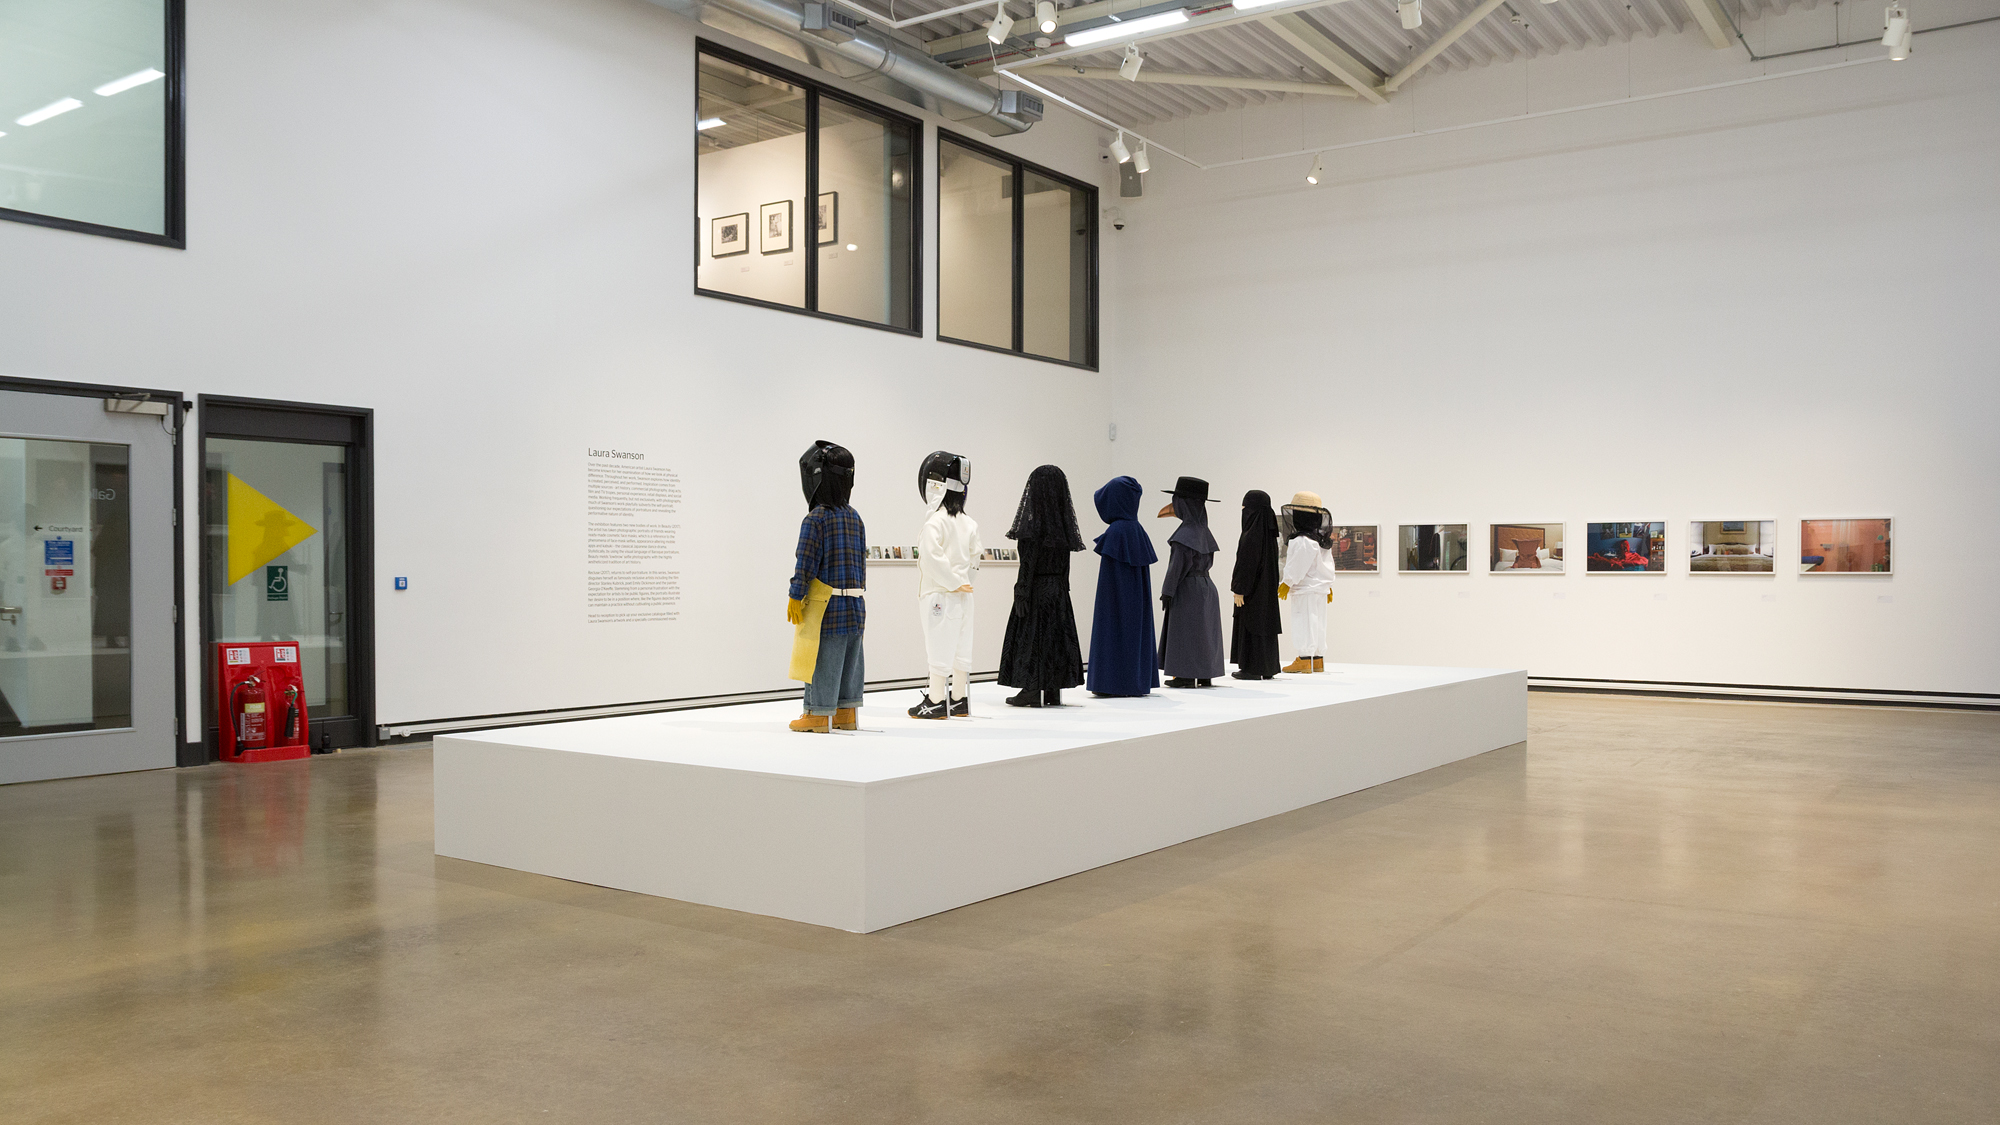 Installation view of Uniforms (2015) and Anti-Self-Portraits (2005-2008)